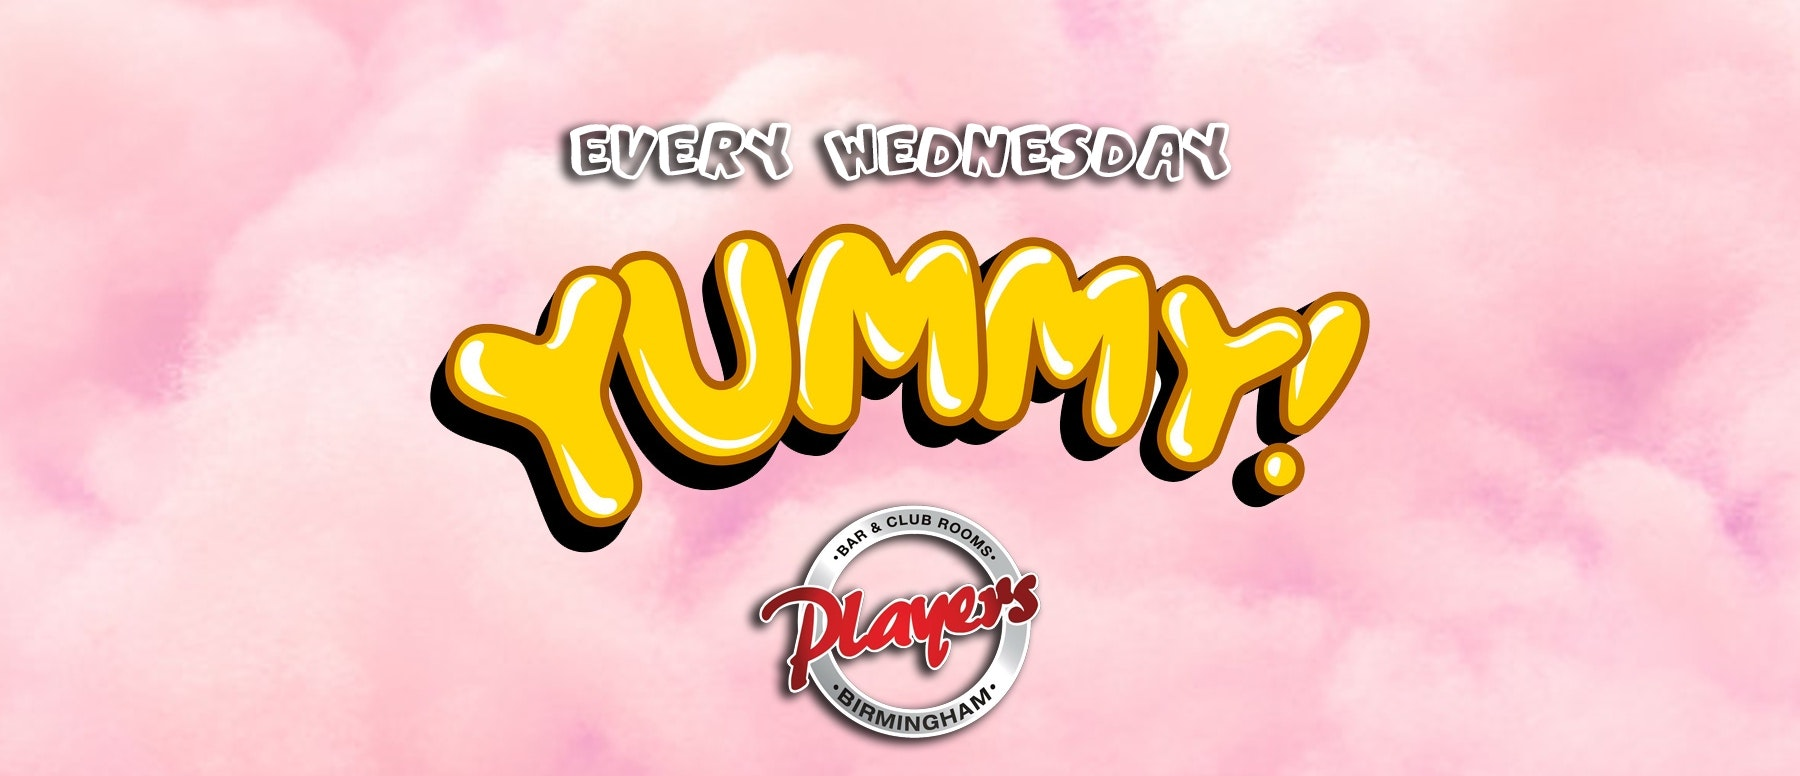 YUMMY! Wednesday nights at Players!